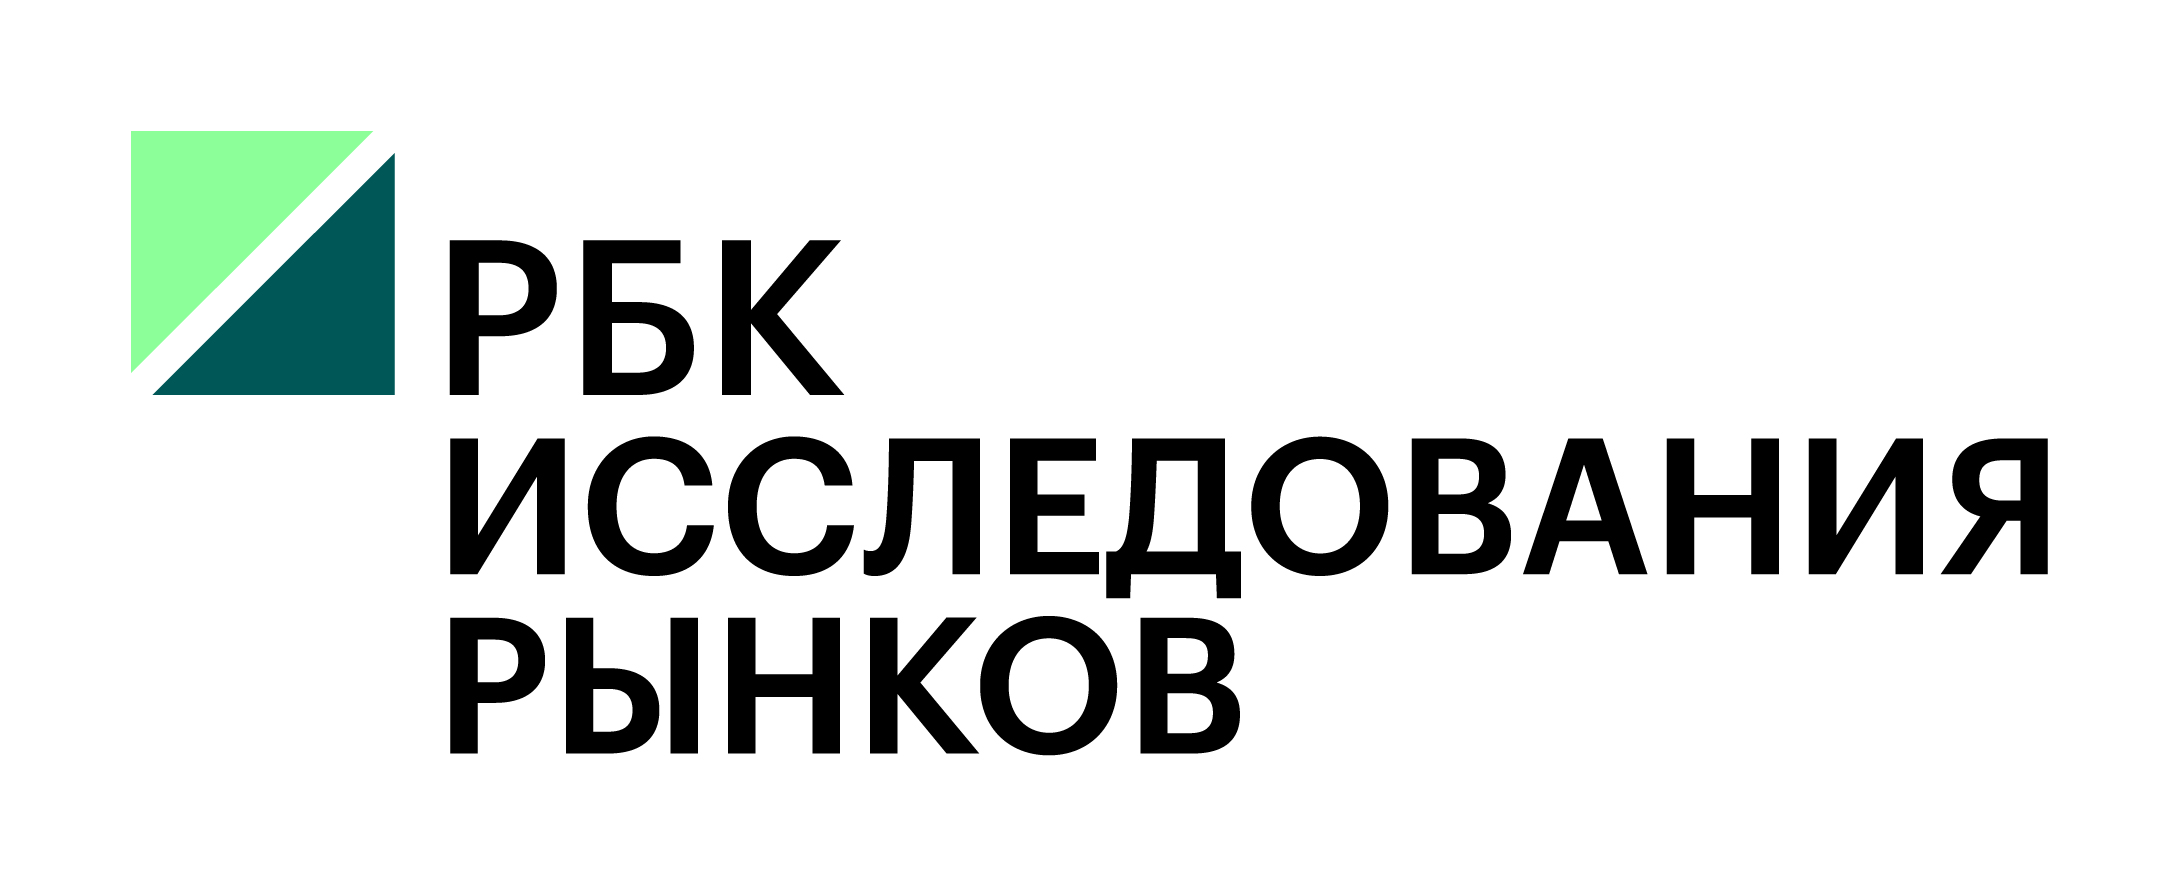 http://marketing.rbc.ru/